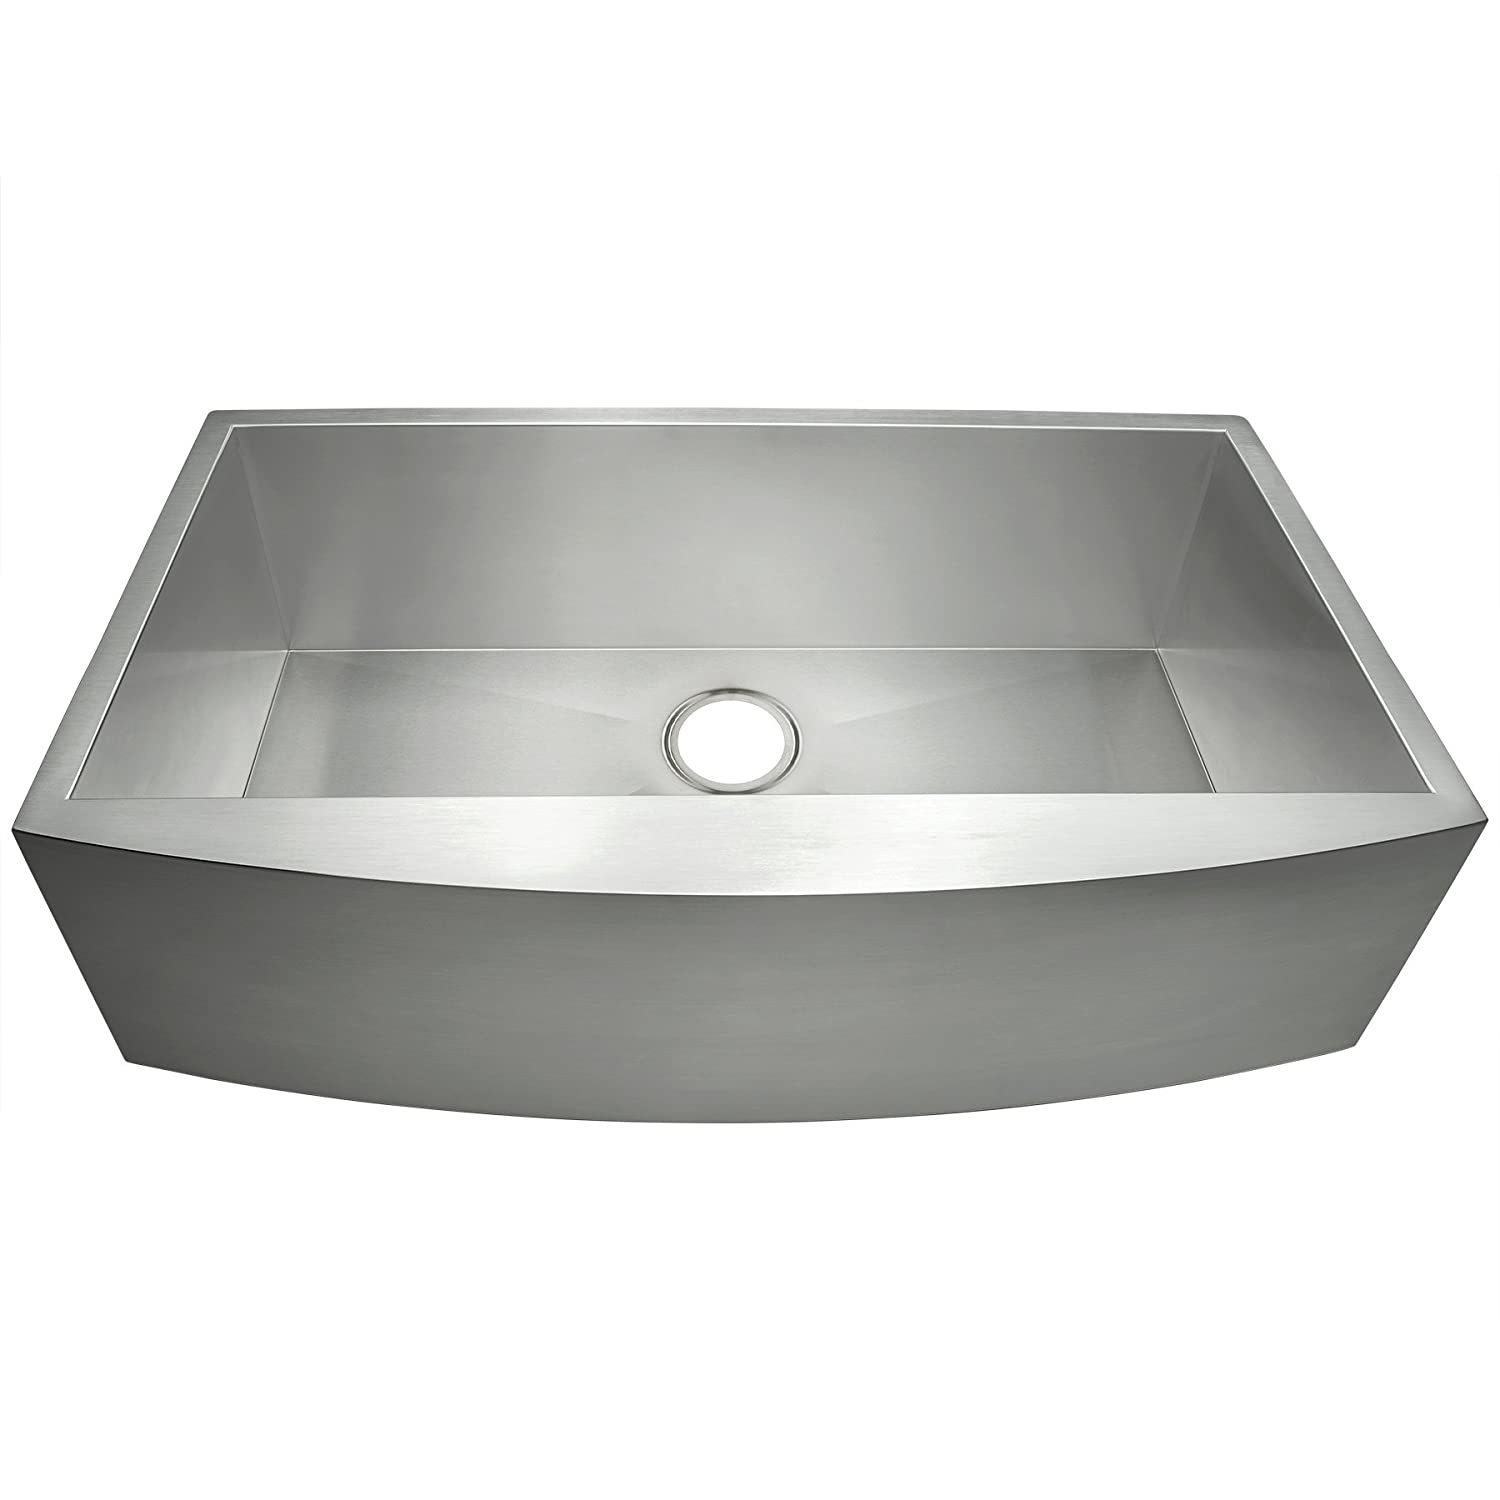 GV Farmhouse Undermount Handmade Stainless Steel Kitchen Sink 33-inch Single Bowl Basin 33 x 22 x 9 with 3.5 Drain Opening